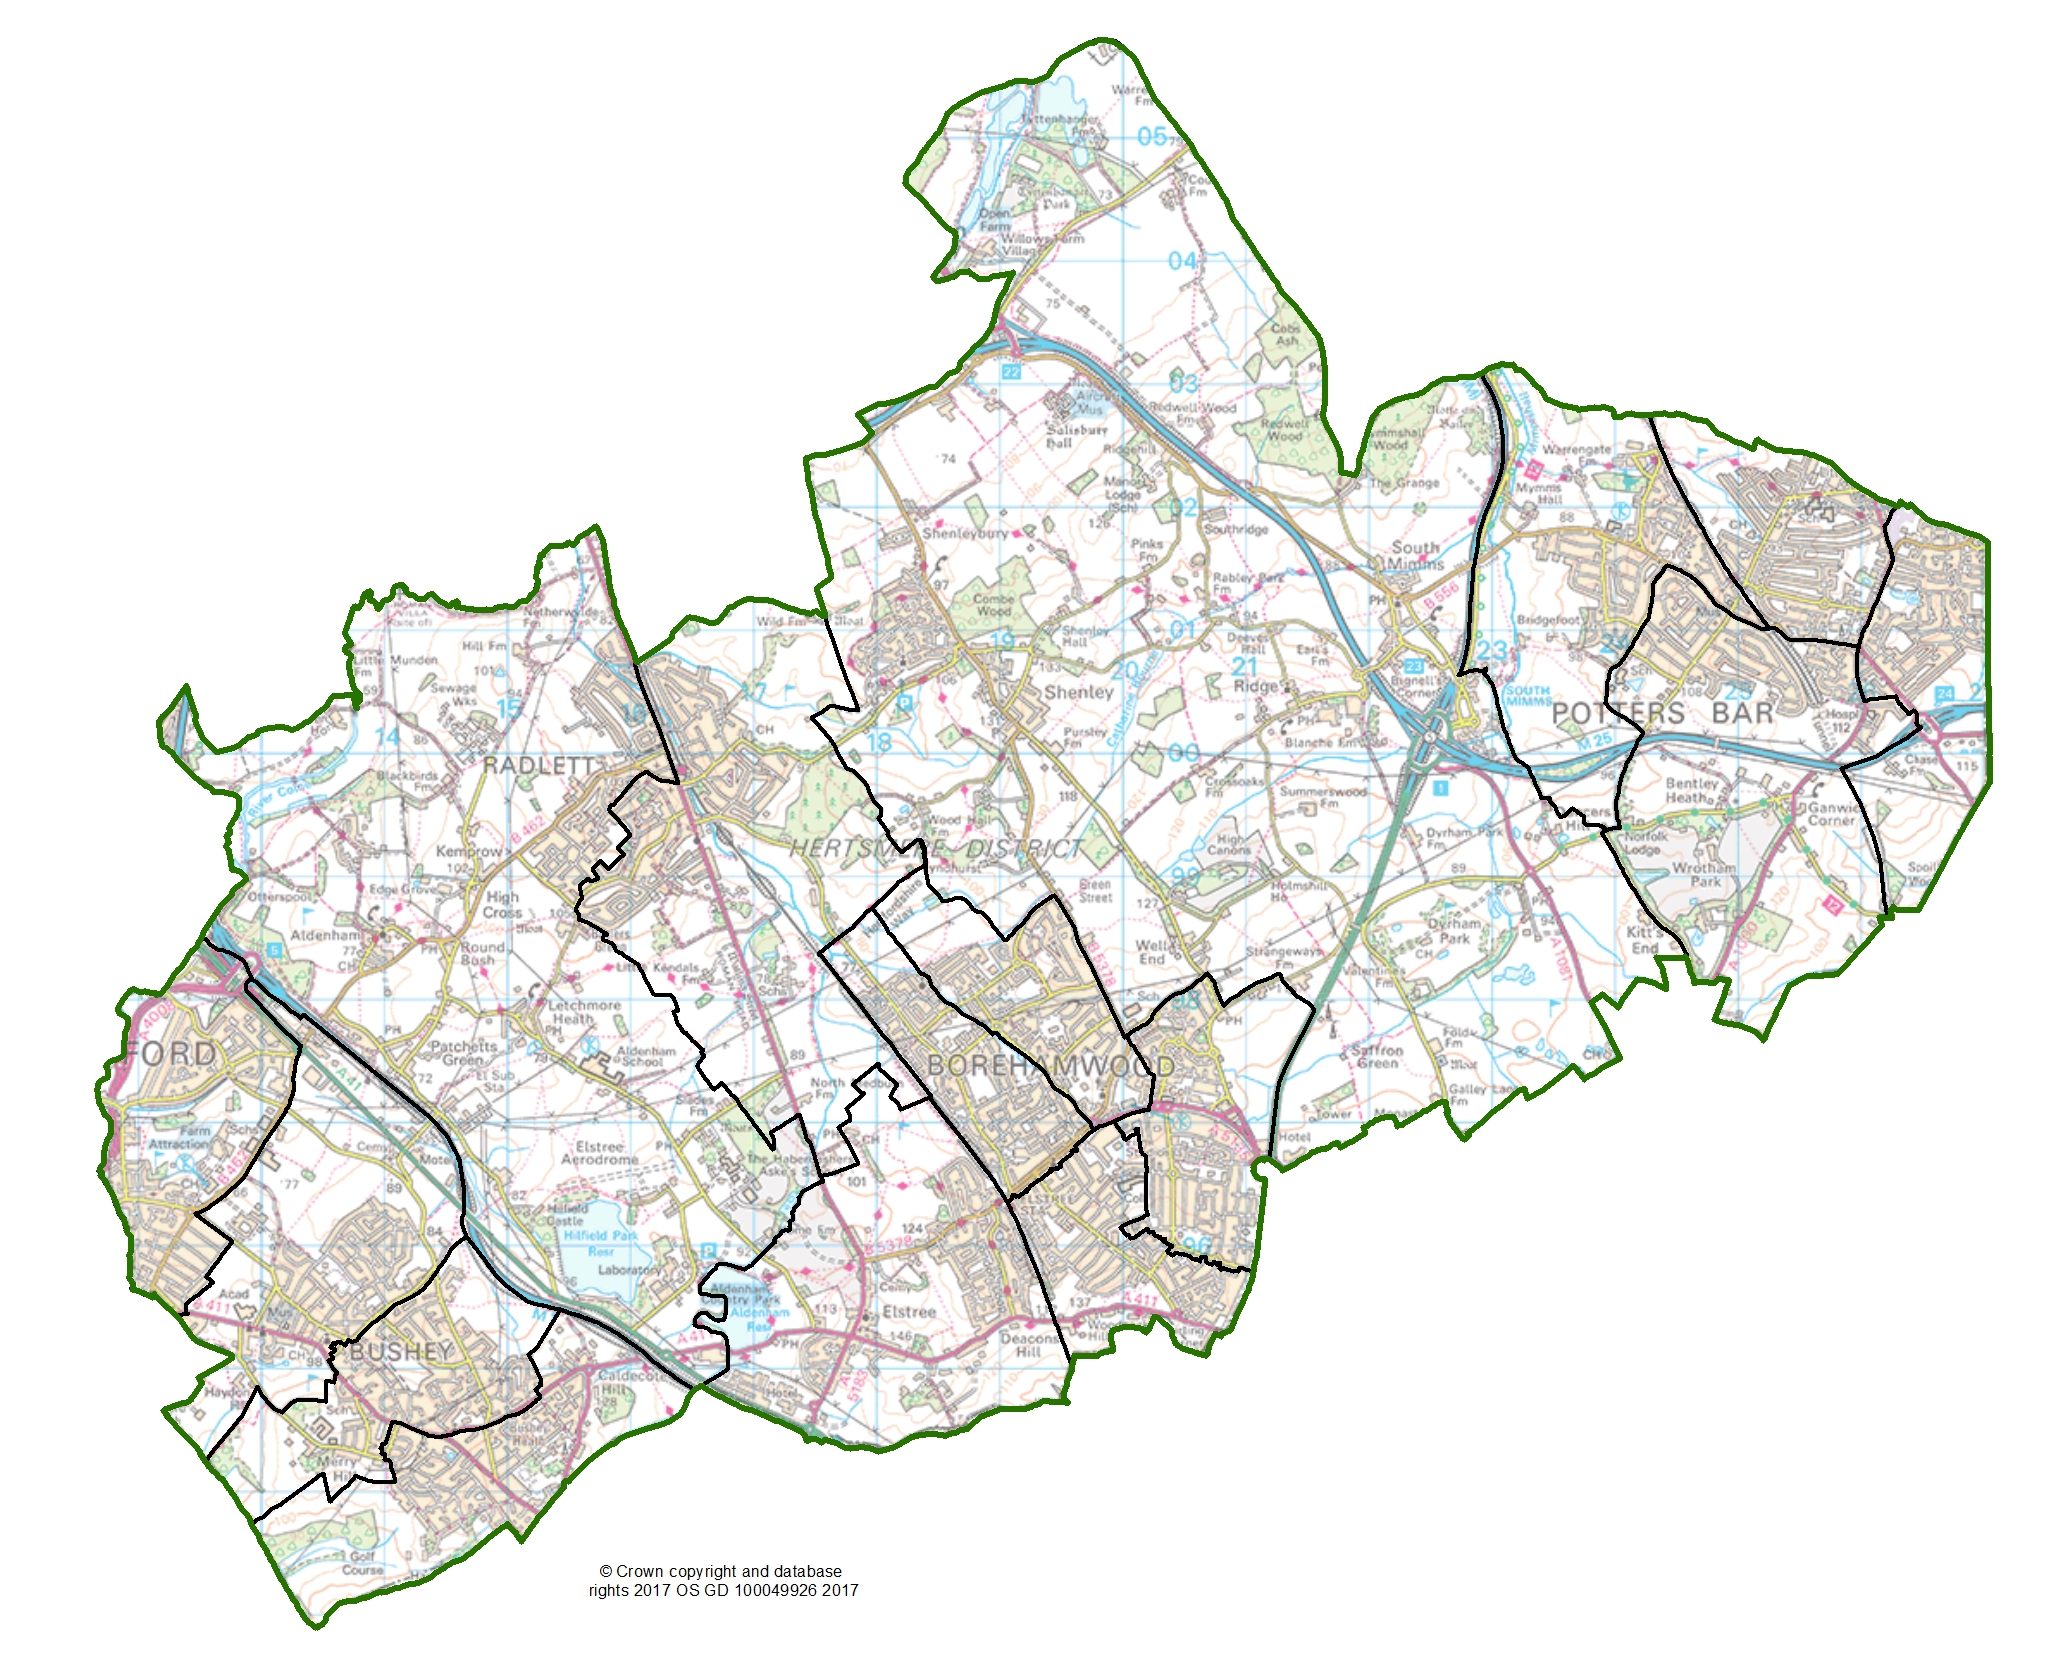 Final recommendations ward map for Hertsmere